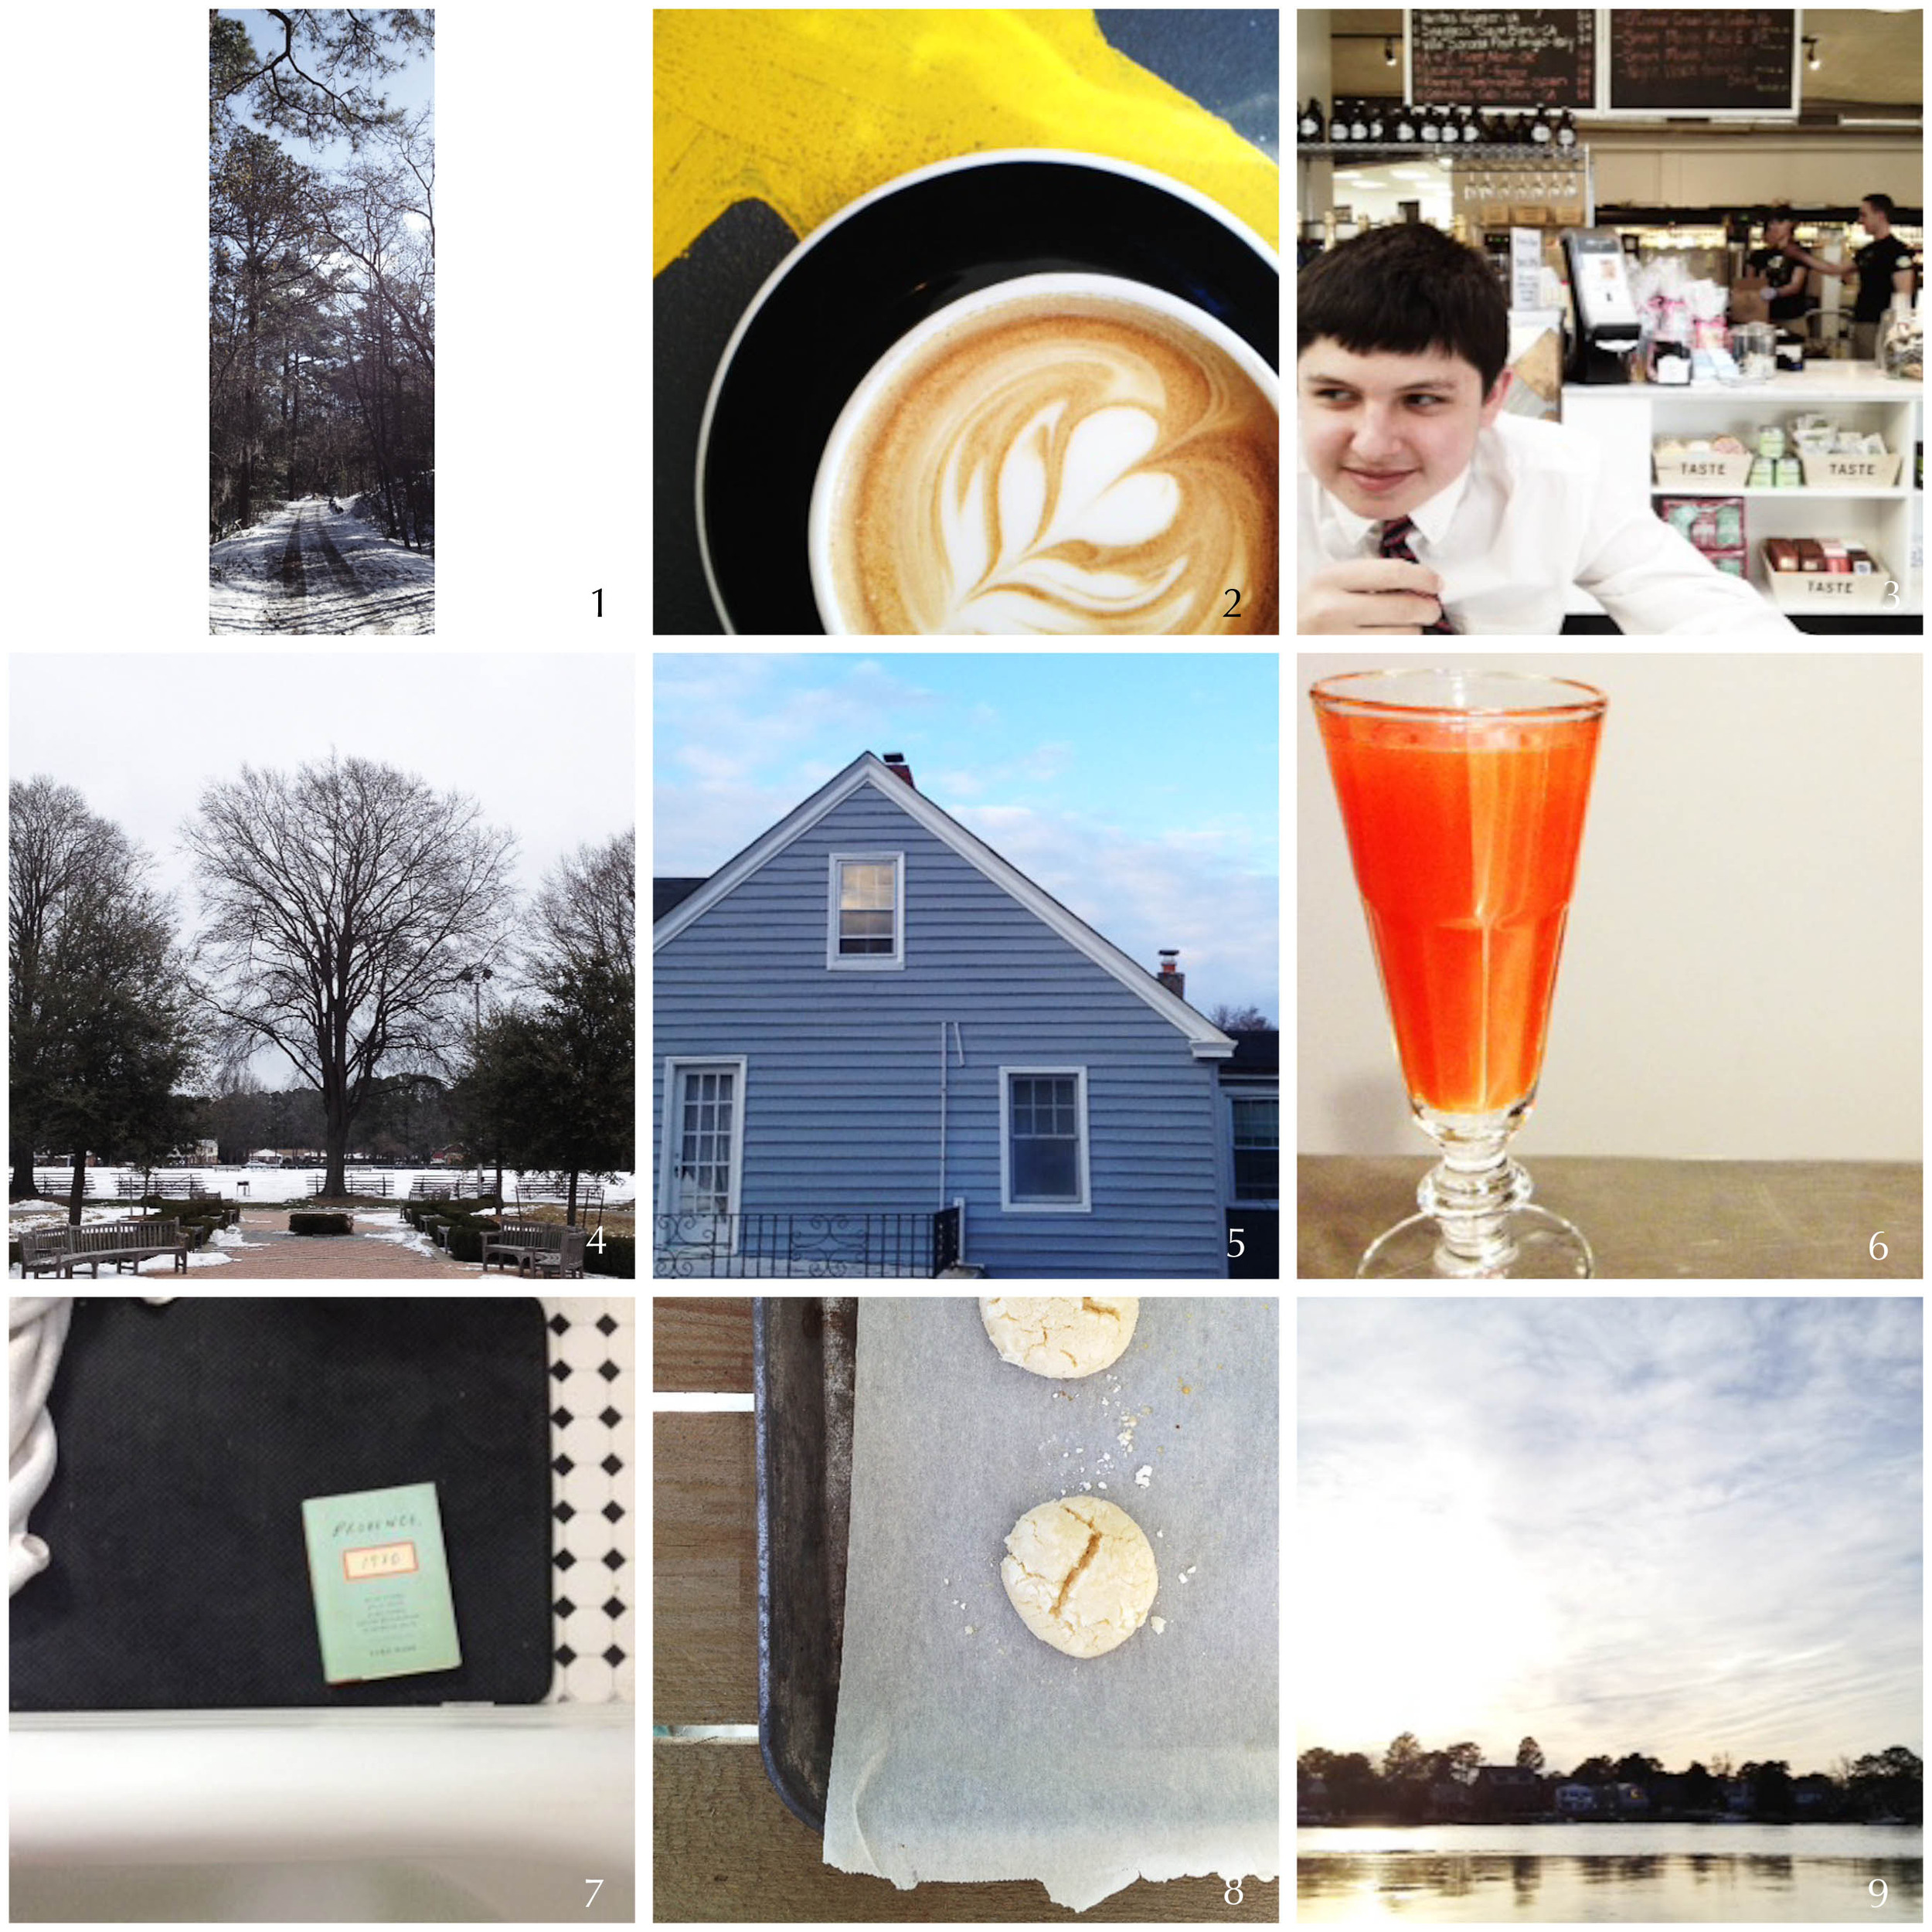 1. Friday hike | 2. coffee with a friend | 3. welcome home | 4. new routine | 5. next door | 6. liquid courage | 7. little break | 8. lemon cookies | 9. my river